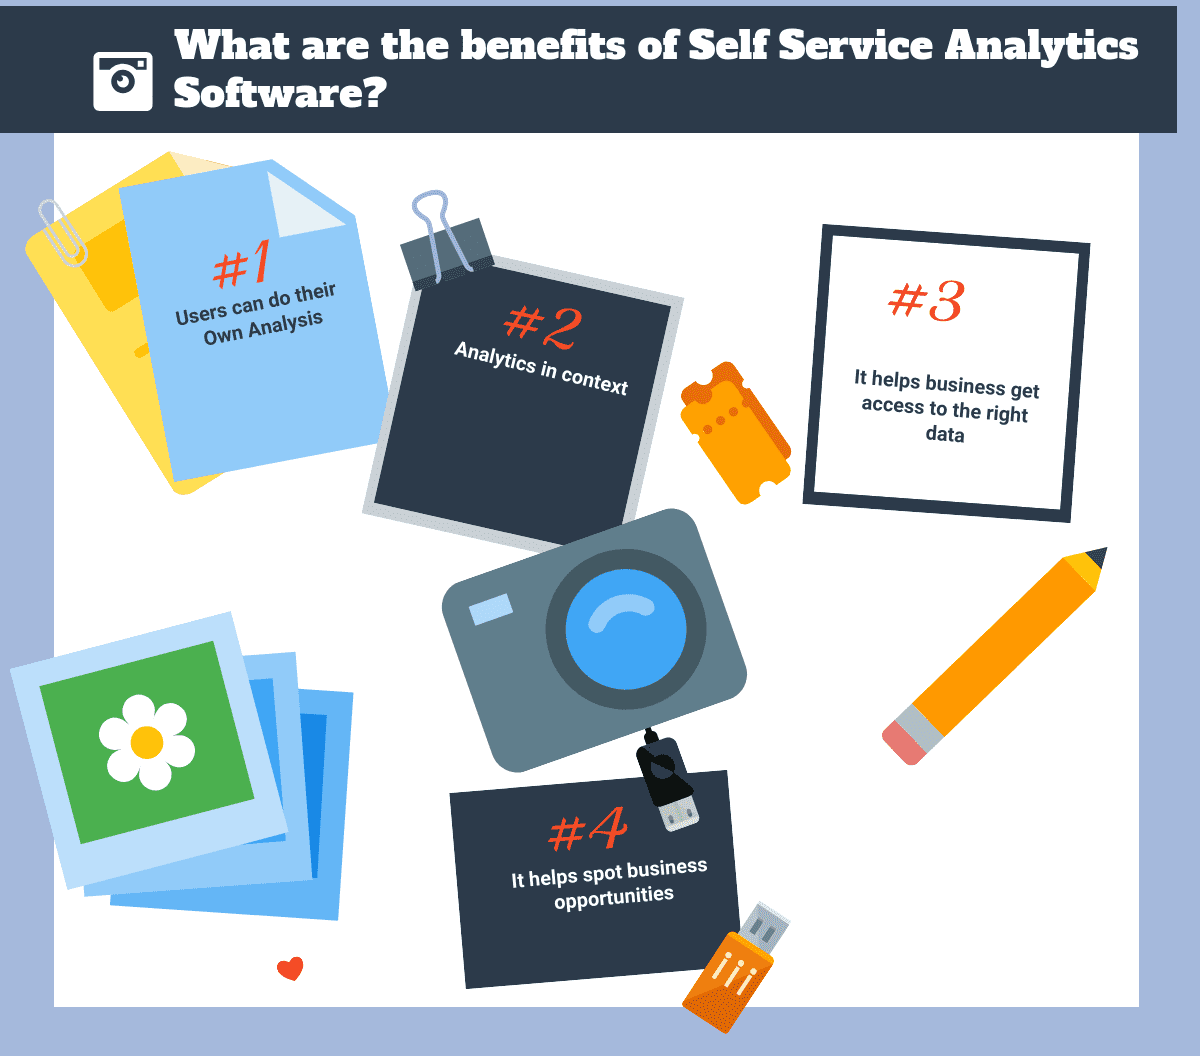 What are the benefits of Self Service Analytics Software